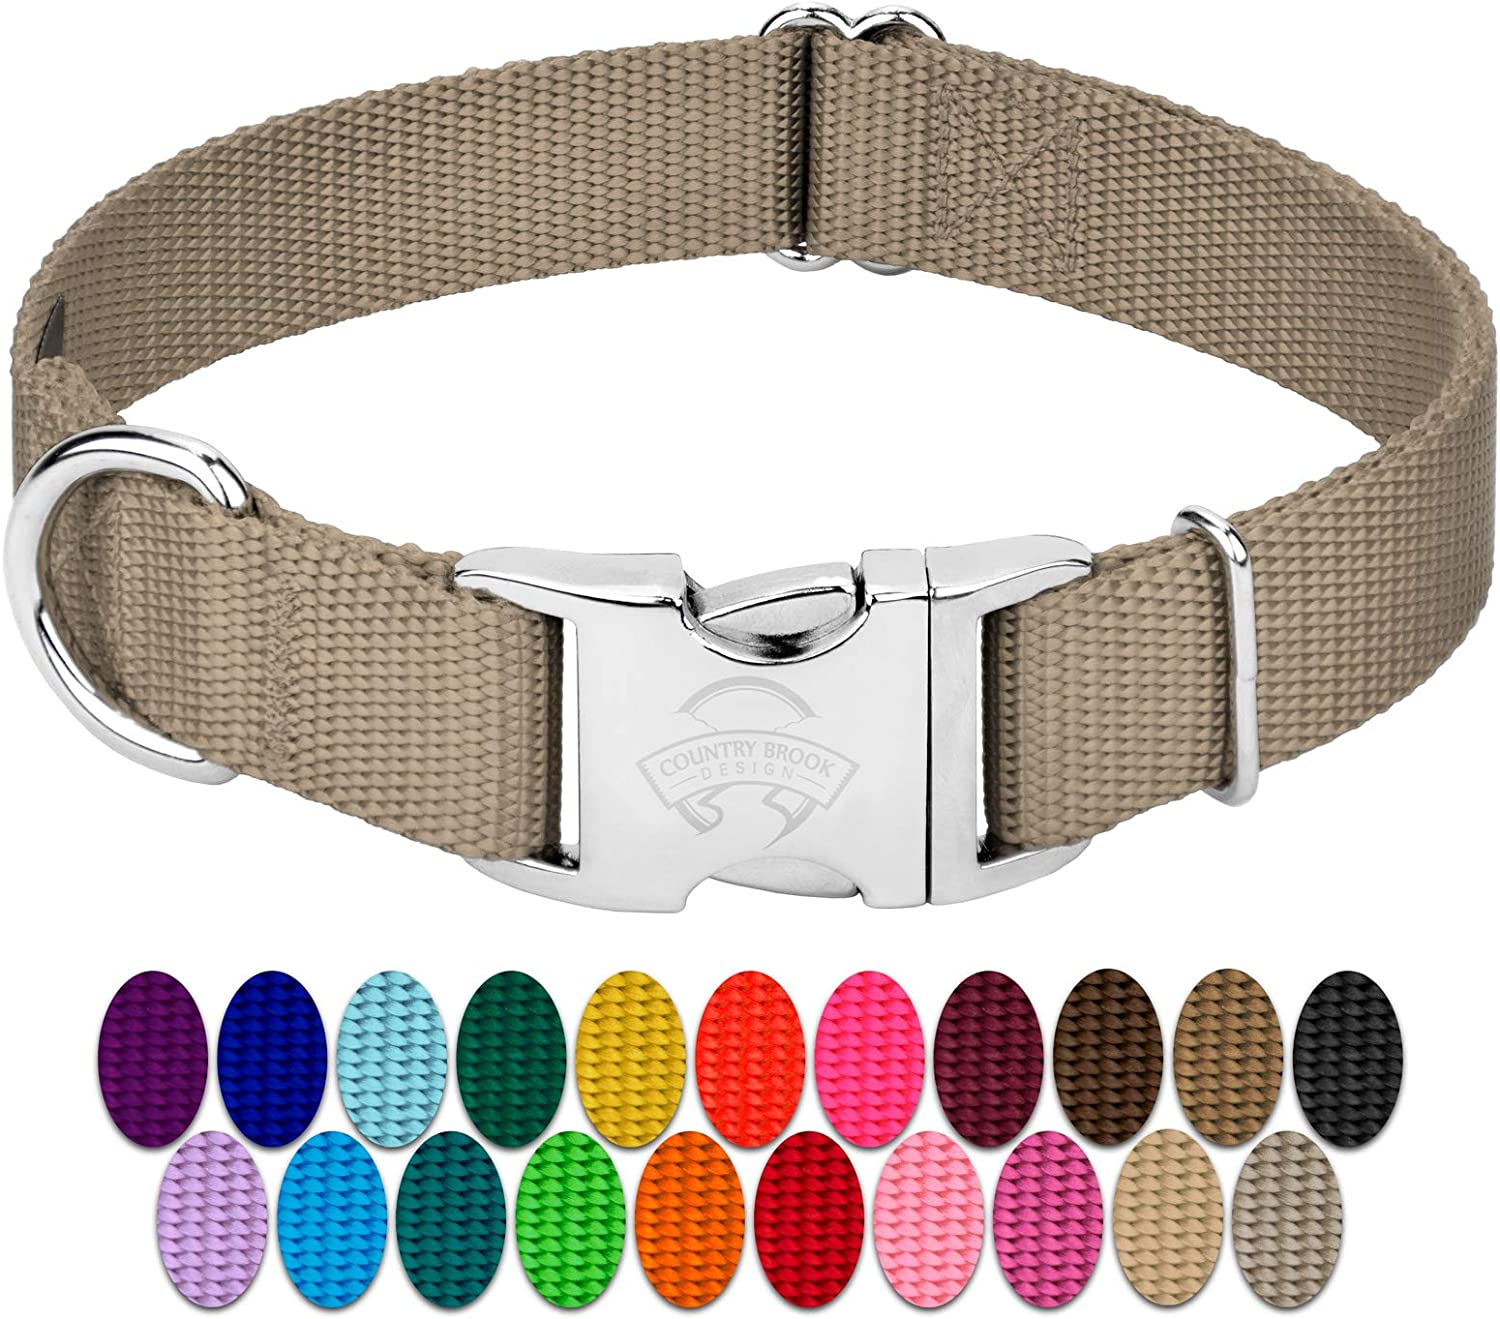 Country Brook Petz   Premium Nylon Dog Collar with Metal Buckle   Vibrant 22 color Selection (Extra Large, 1 Inch Wide)